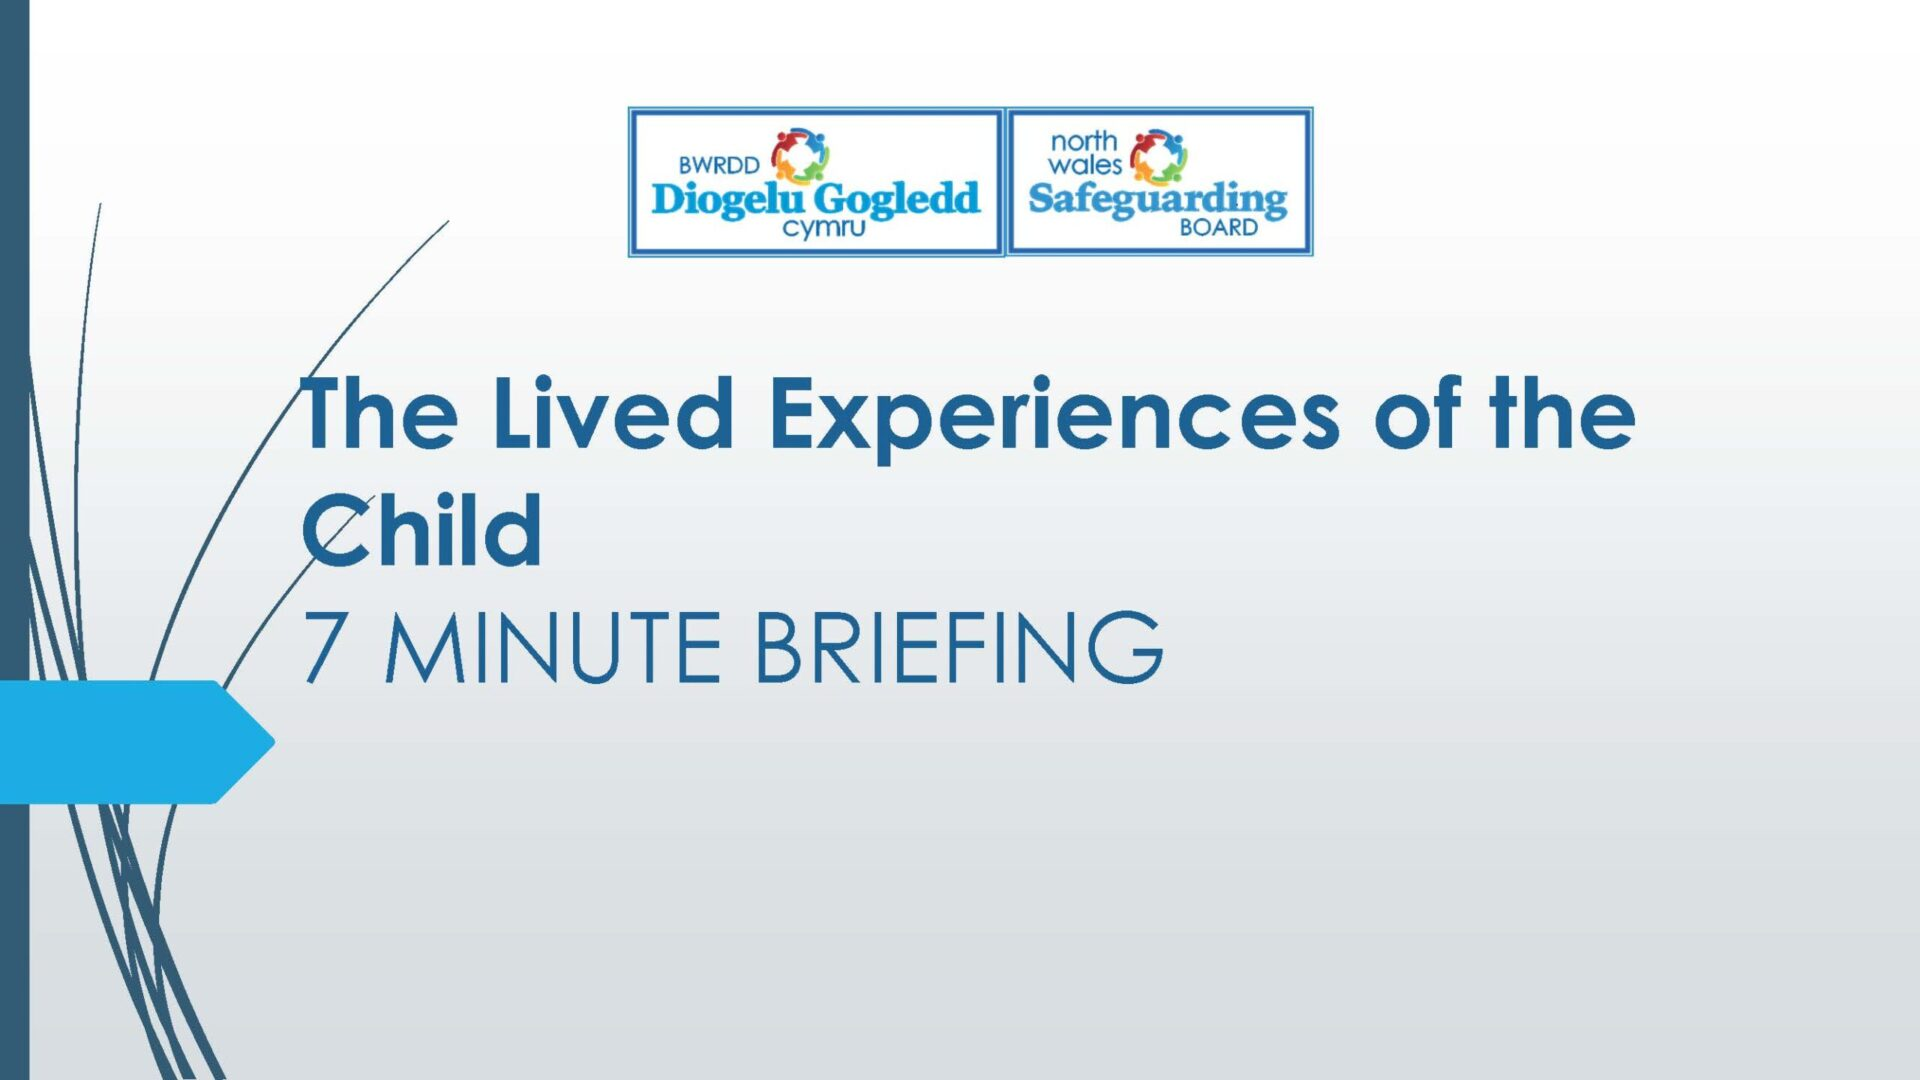 The Lived Experiences of the Child